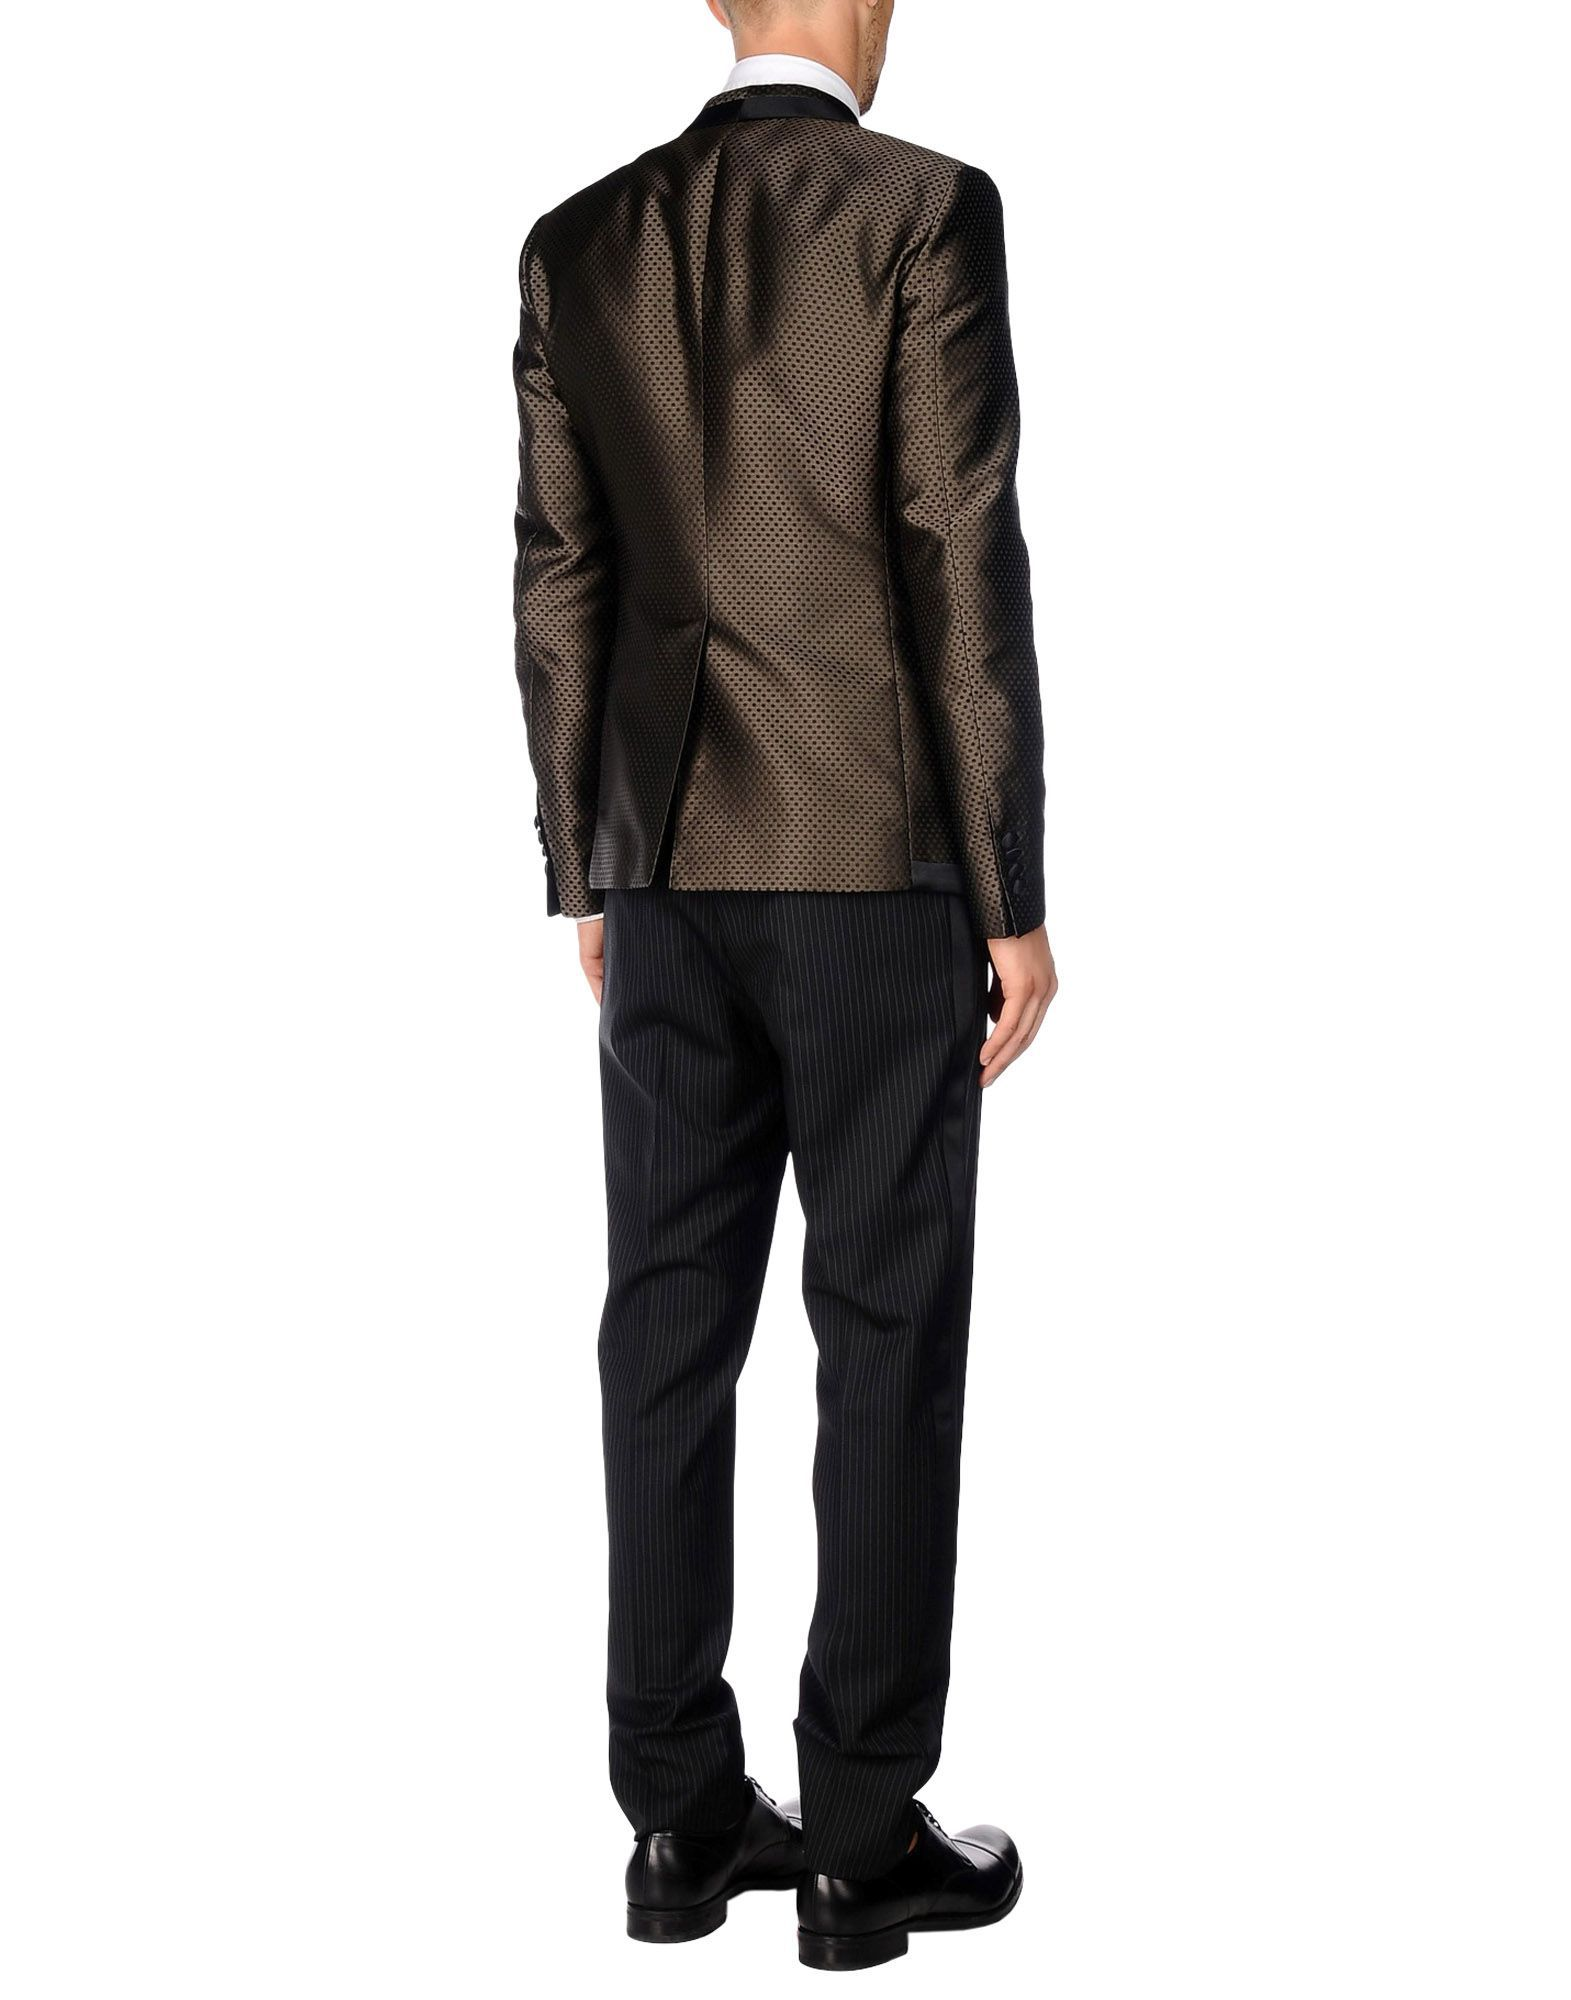 Dolce & Gabbana Khaki Virgin Wool Suit